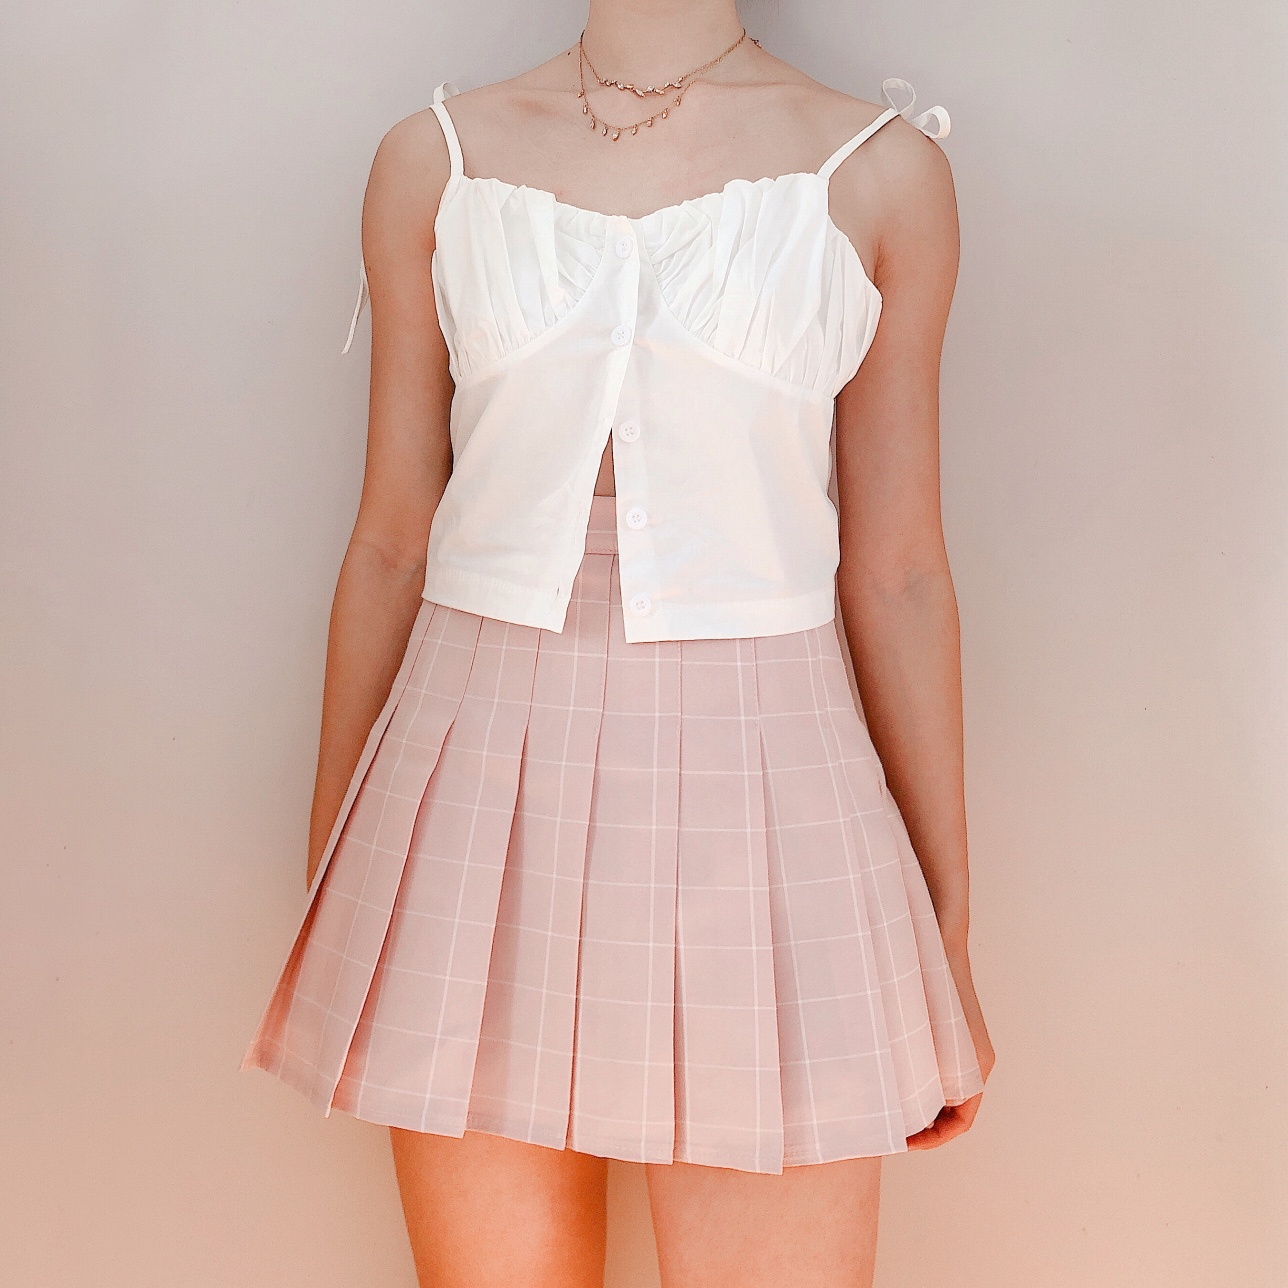 White Puff Bustier Cami ♡ Button up front with